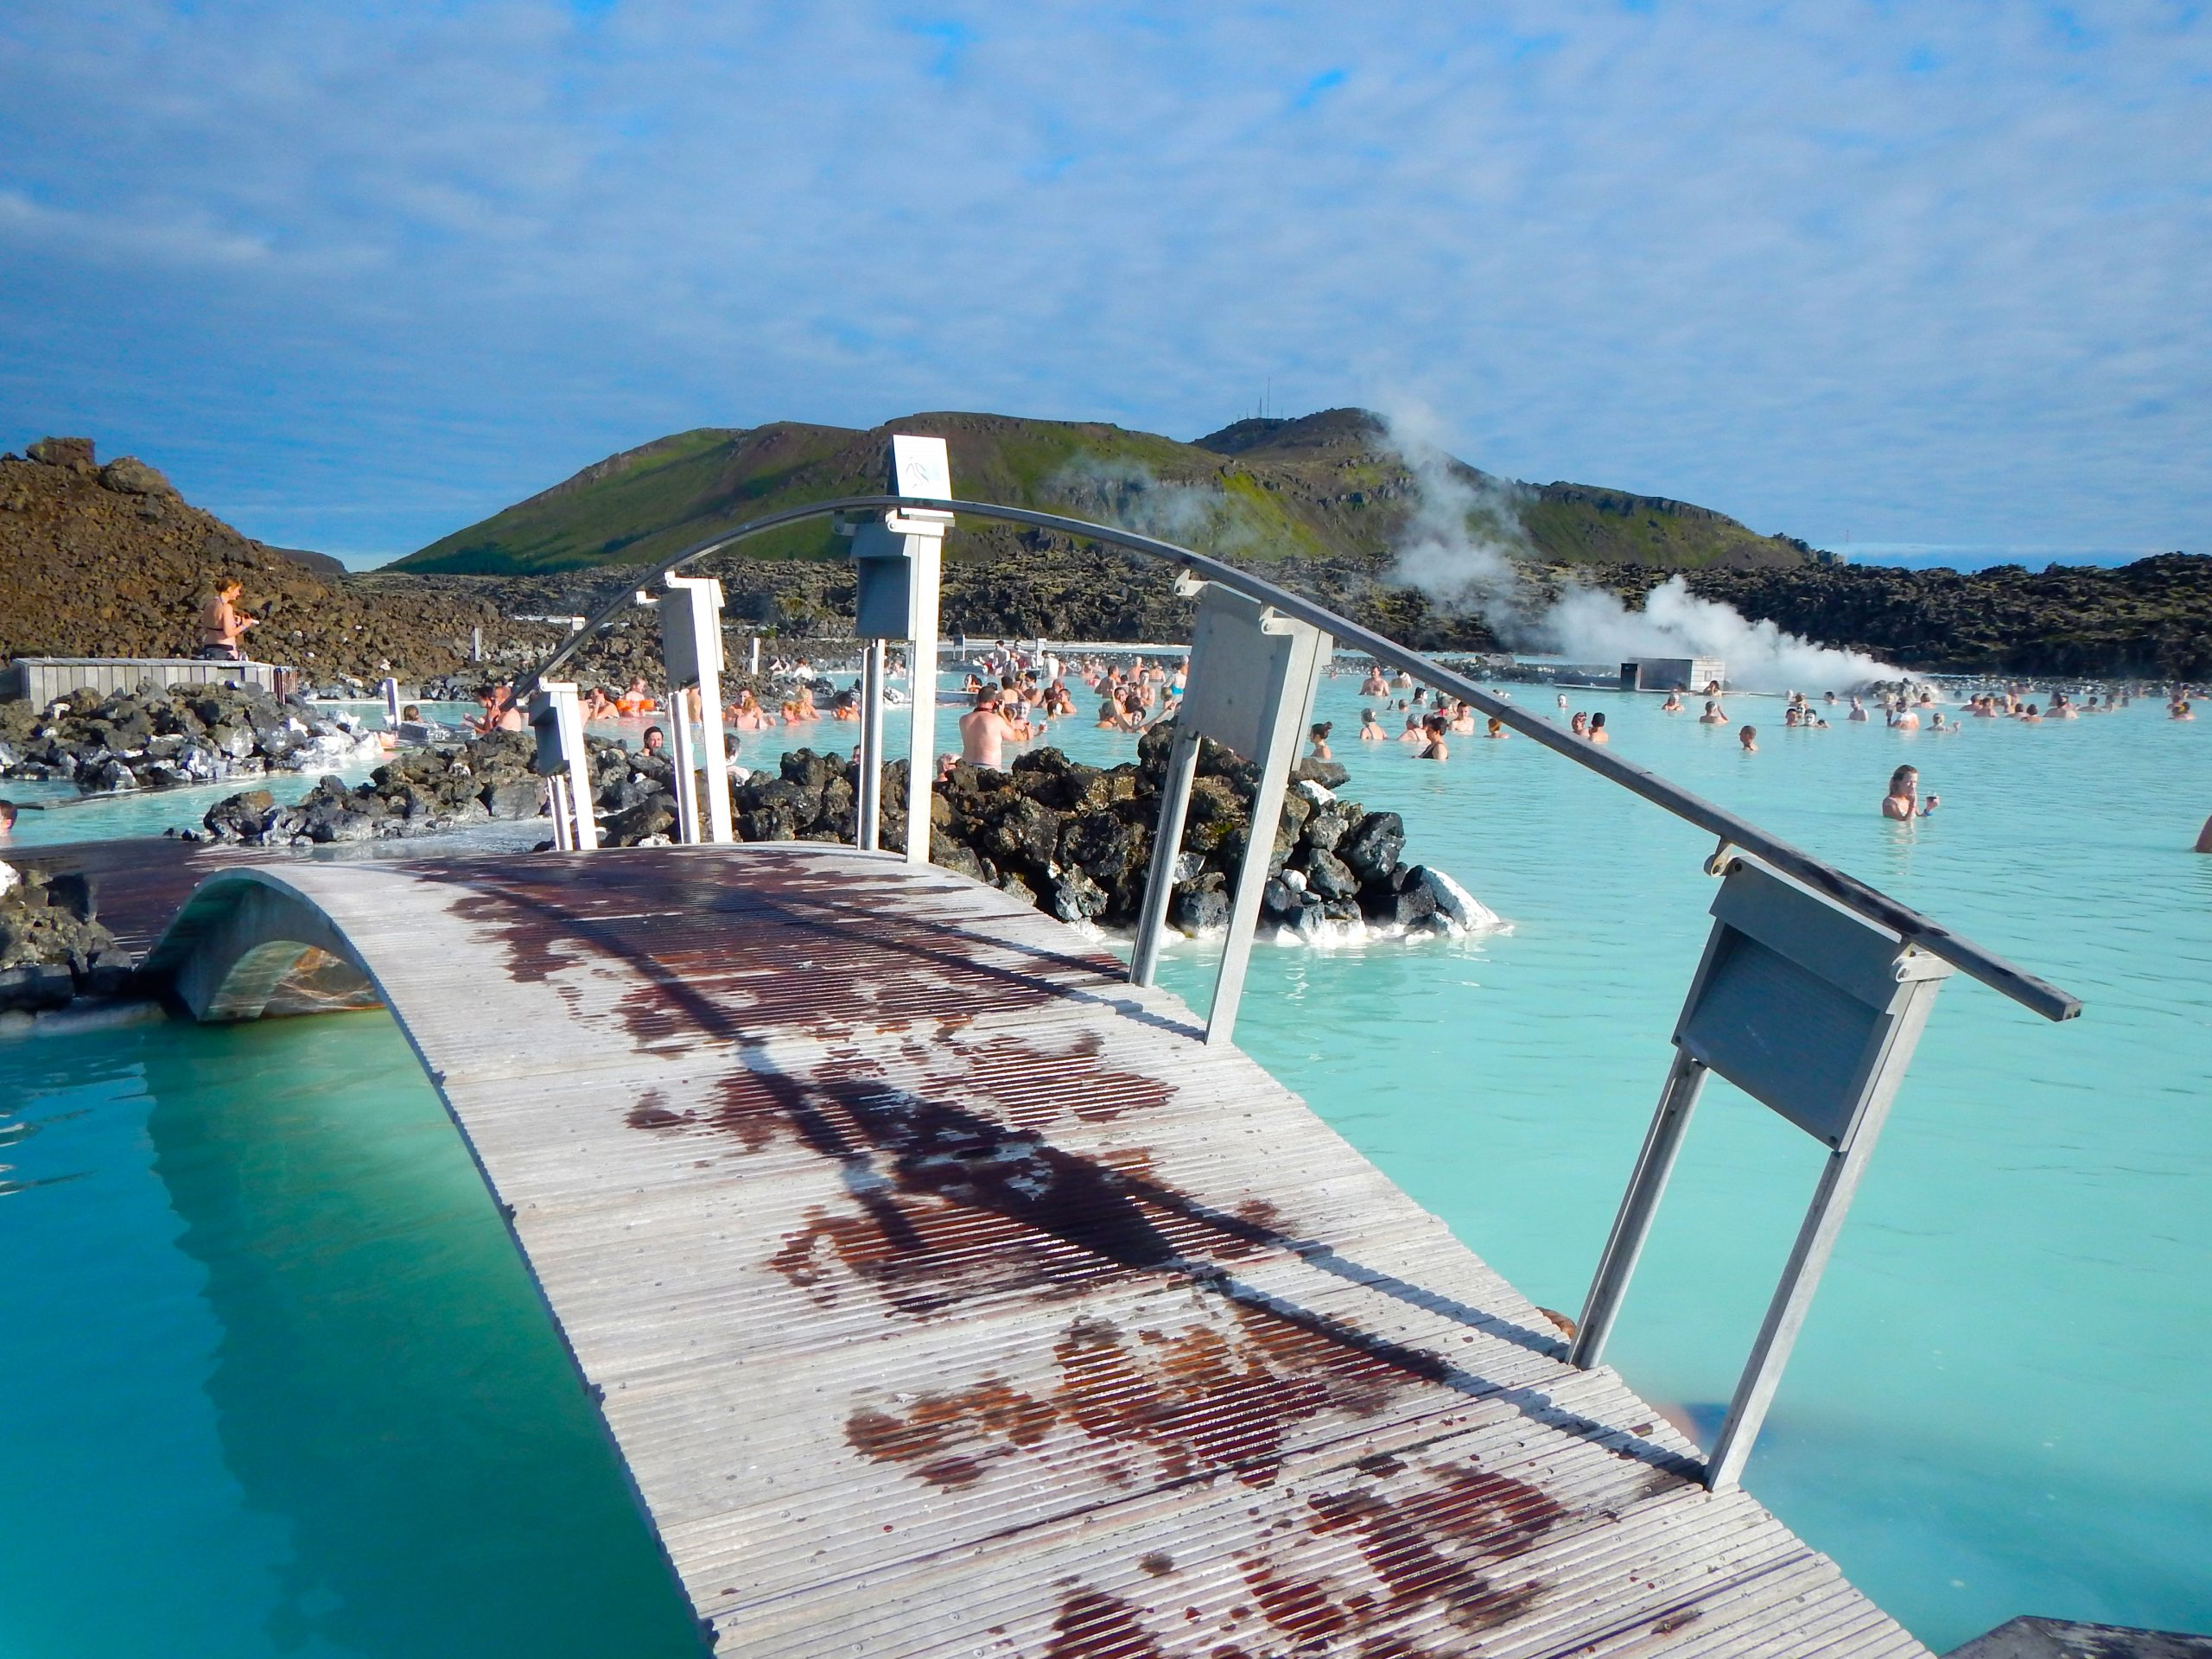 Relaxing in the geothermal waters of Iceland's Famous Blue Lagoon